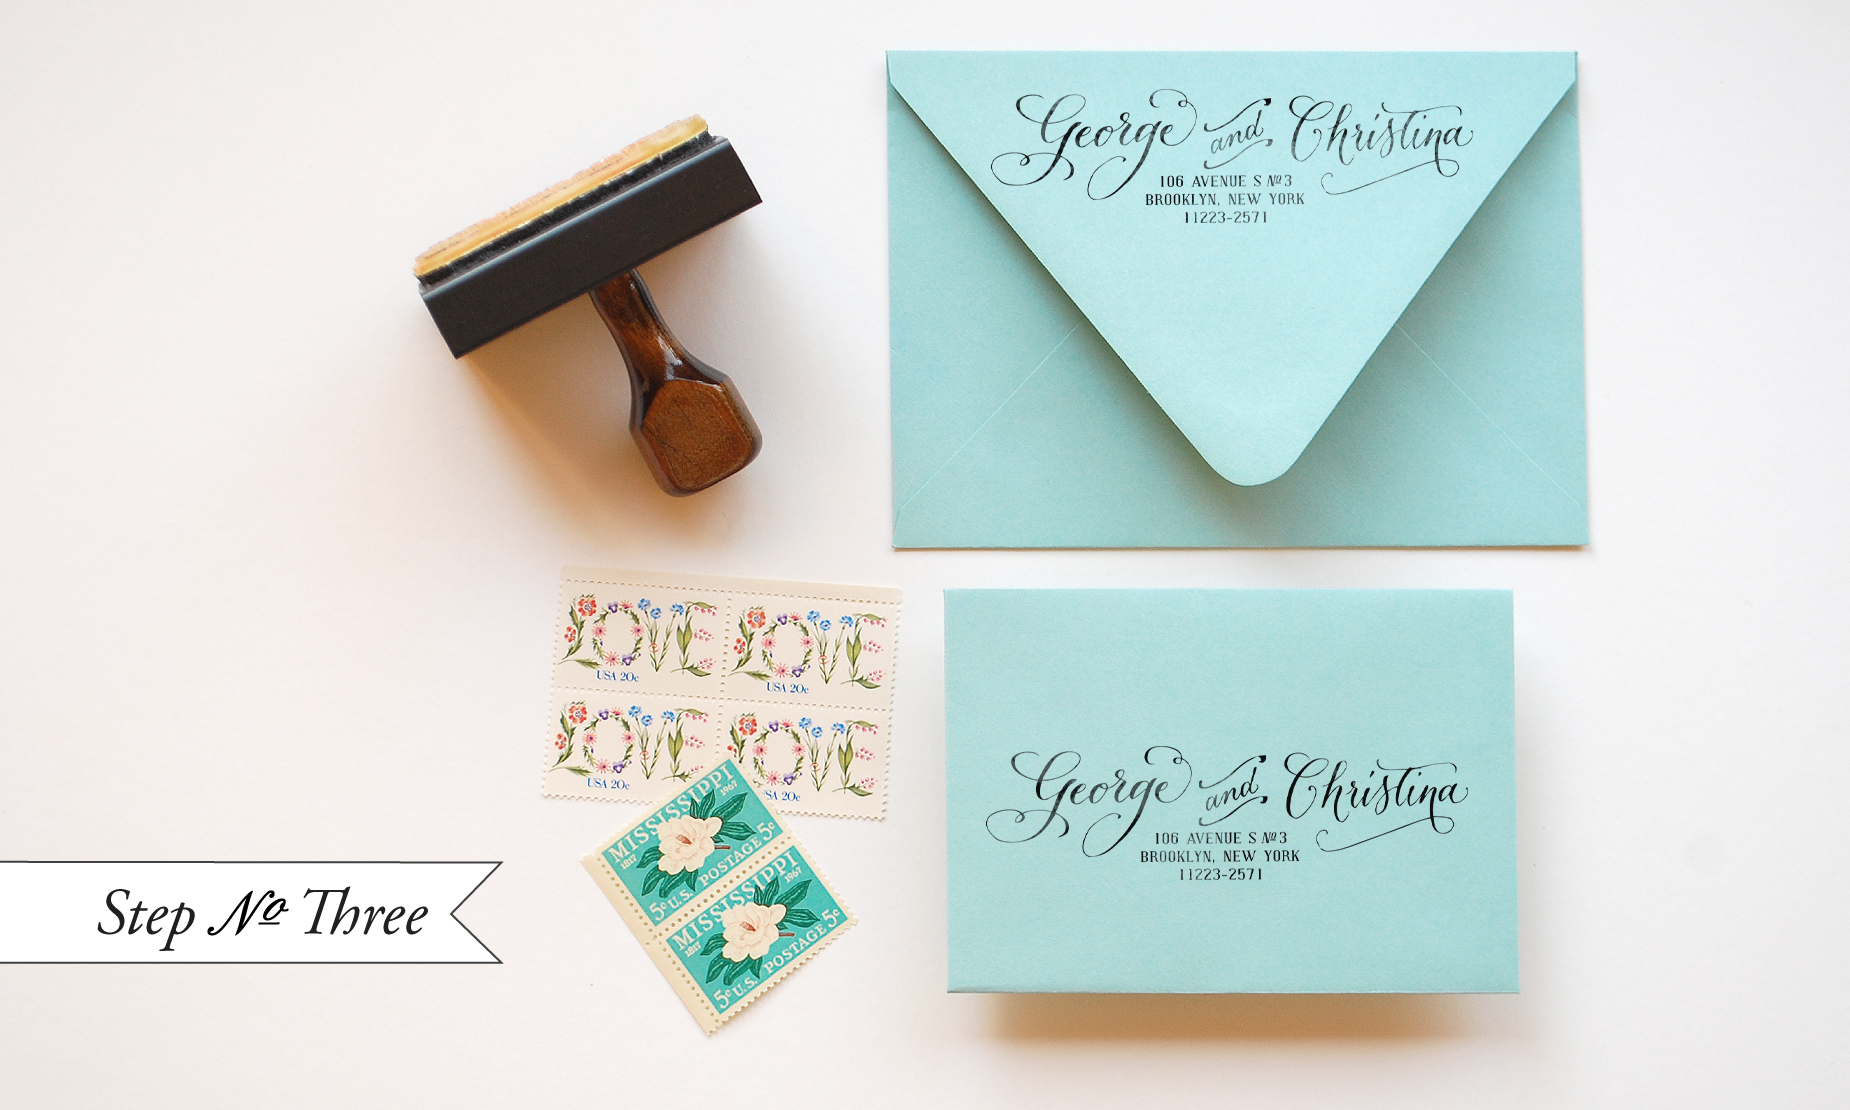 Return Address For Wedding Invitations could be nice ideas for your invitation template